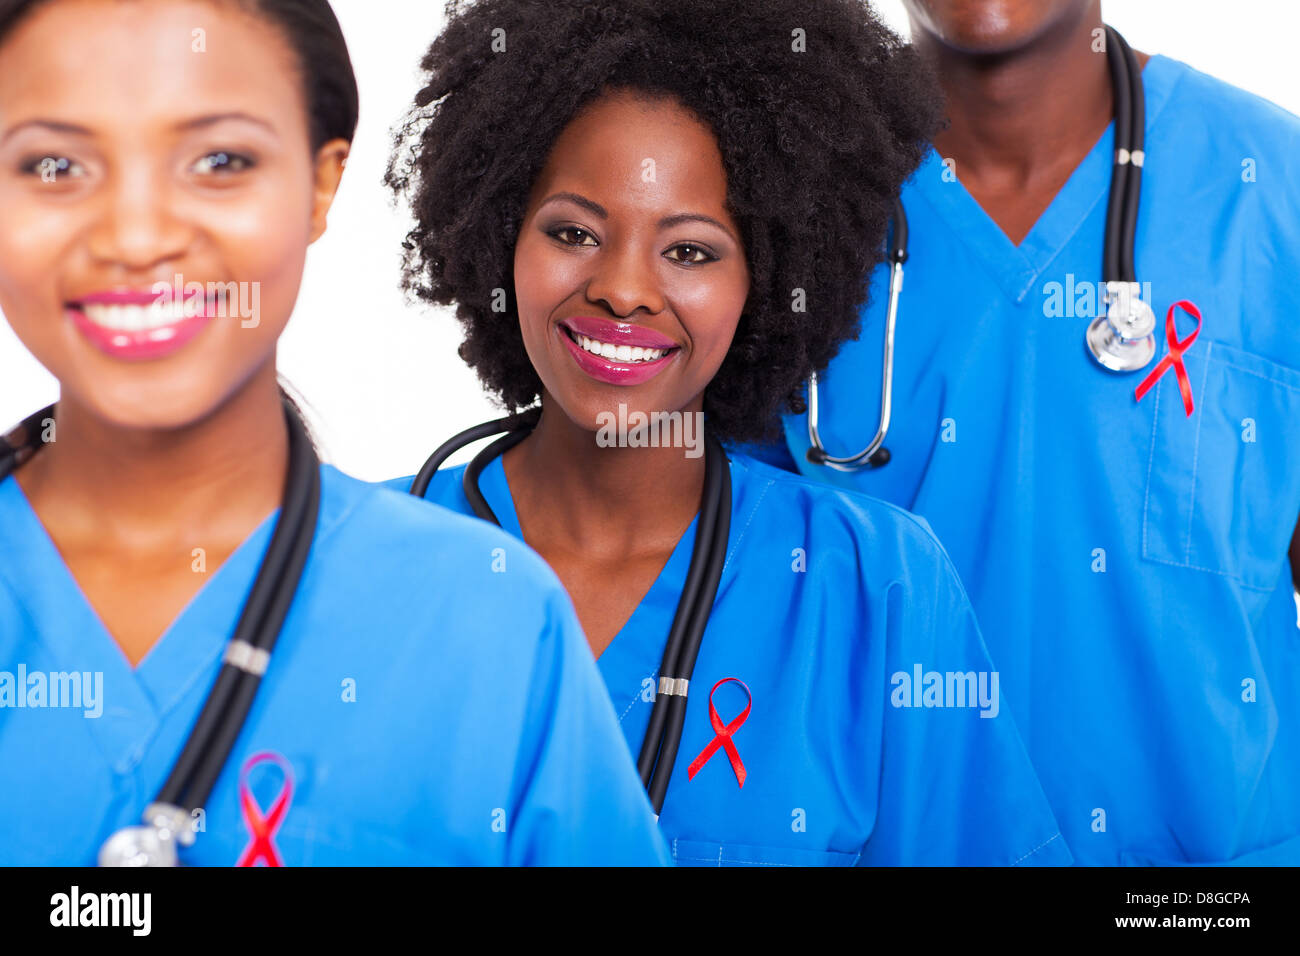 aids and healthcare workers essay Health care workers (hhcws) were female with an average of 8 years experience the majority of clients were elderly, with a smaller percentage of adult (26 percent) document this risk as an important first step in prevention and management.